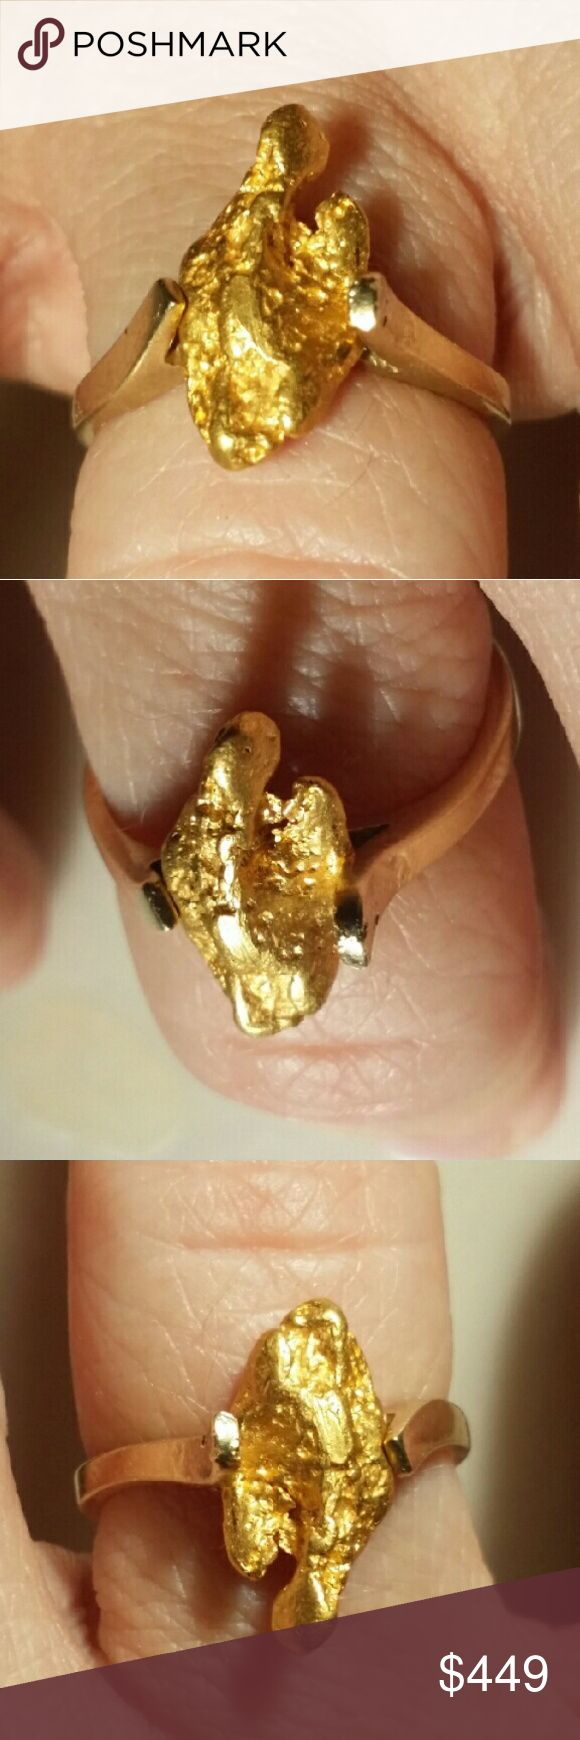 22k-24k Australian Gold Nugget Solid 14k Gold Ring 2.1 Gram Australian Natural Big Gold Nugget that I High in Purity @ 22k - 24k. Placer Gold Nugget.  1.9 gram SOLID 14k Gold ring.   Size 6 ring. This piece is used and has some wear. There is no significant damage to the ring or nugget. It is a beautiful piece and the gold is very bright. It is handmade. The gold nugget is soldered in and set into place.  The ring is a manufactured used piece.  This is definitely one of a kind.  14k is well…